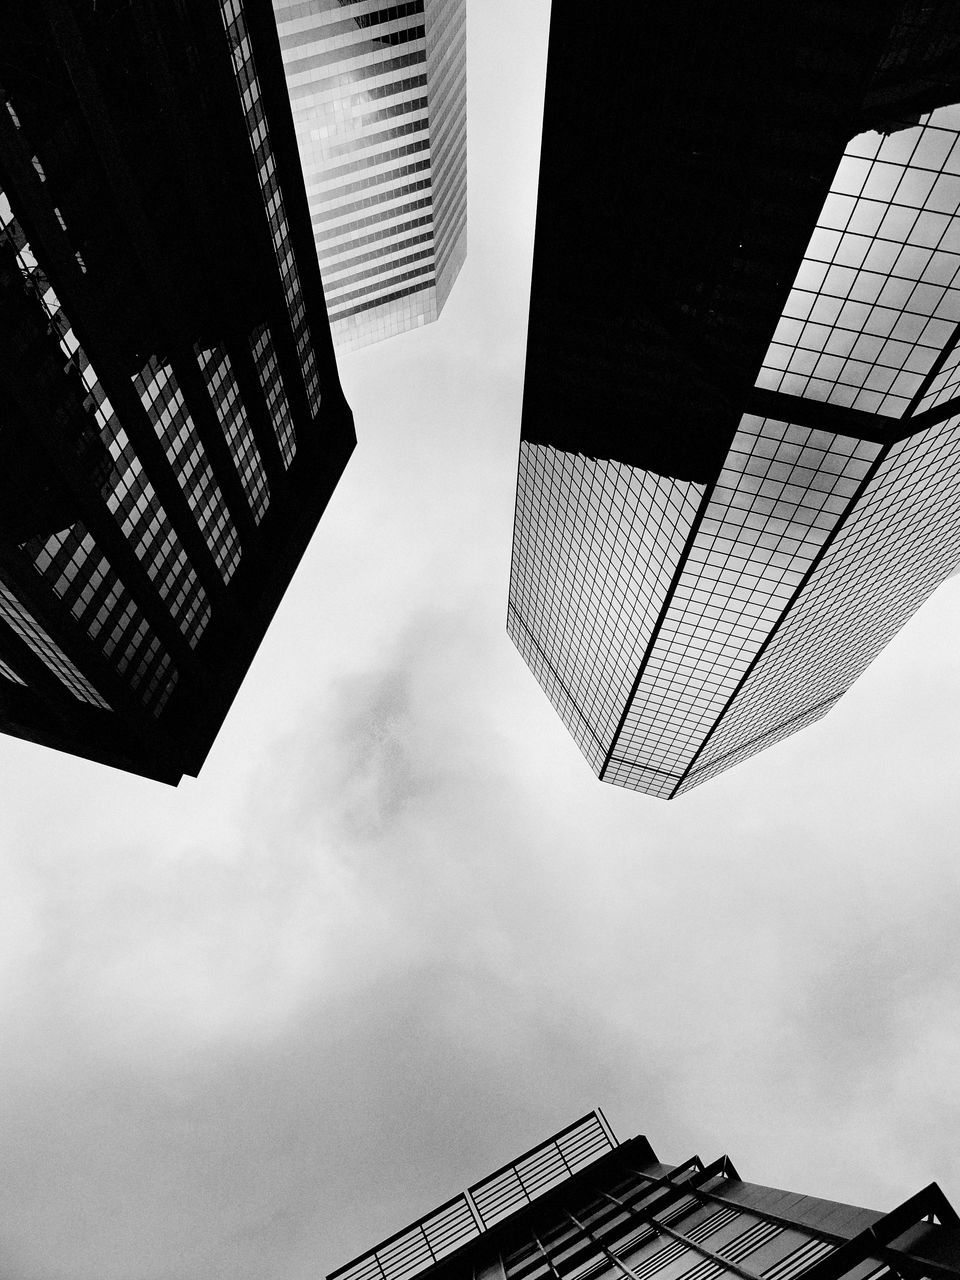 architecture, building exterior, low angle view, built structure, city, skyscraper, sky, day, no people, outdoors, growth, tall, modern